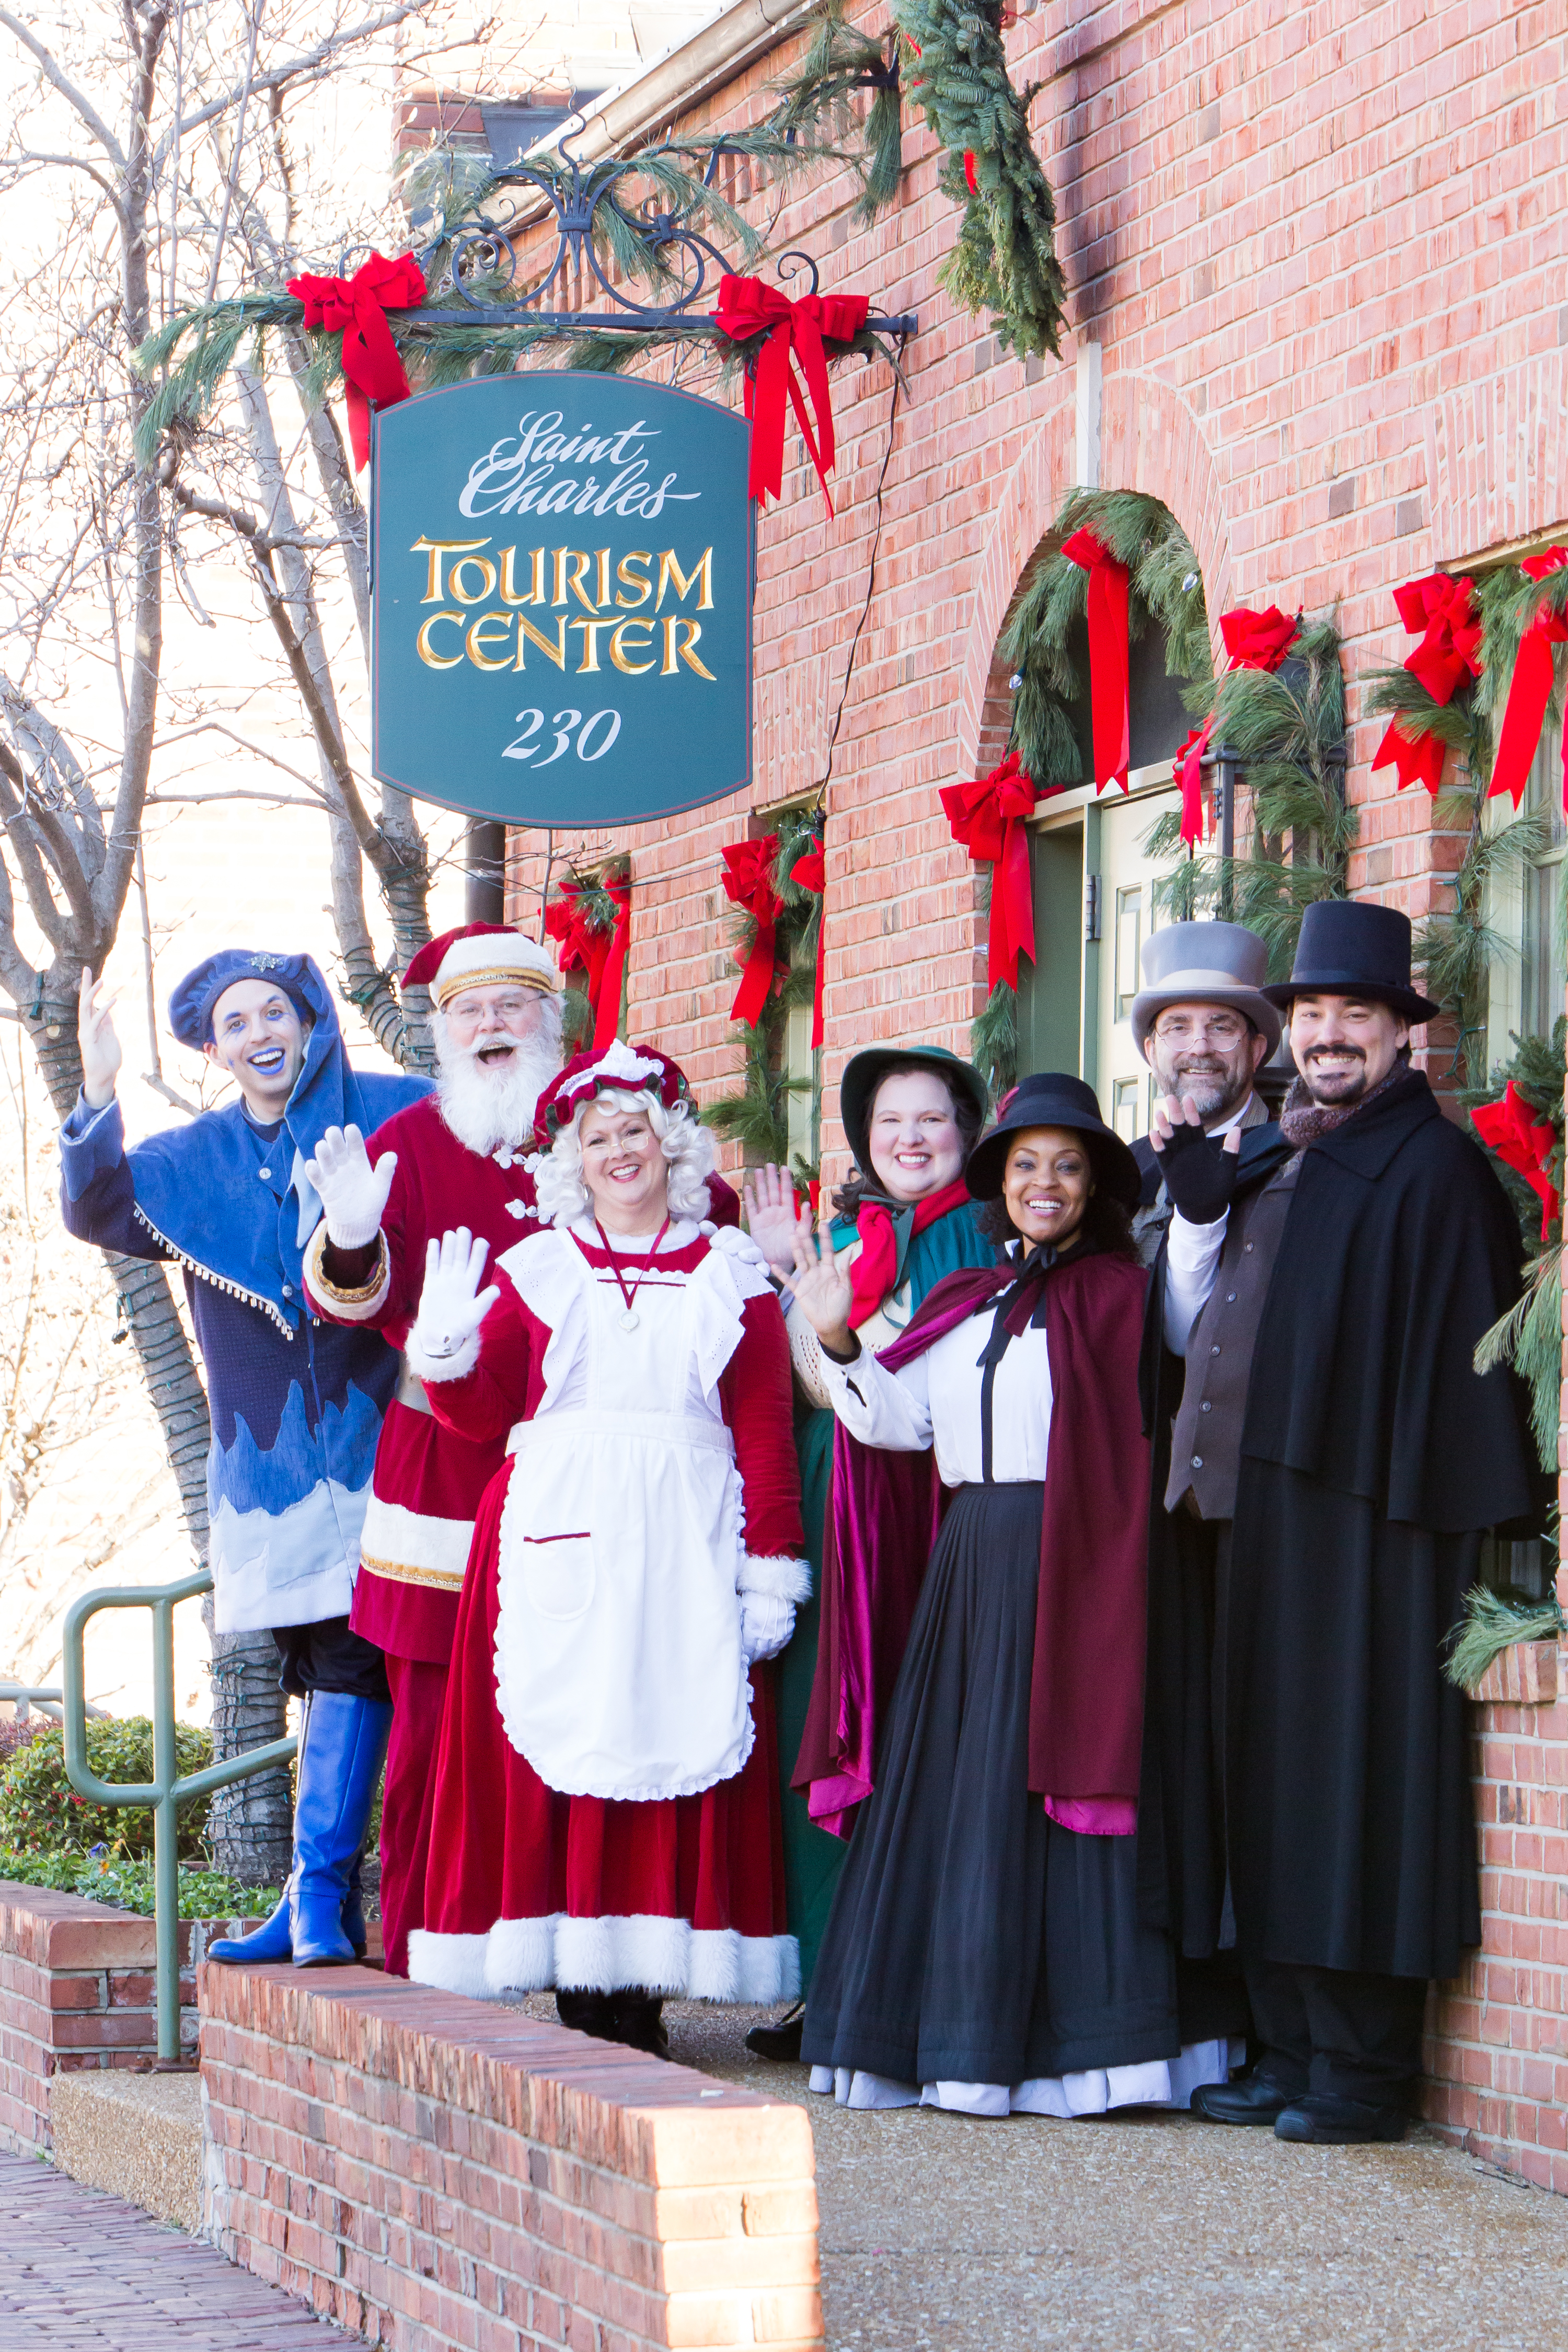 St Charles Christmas Traditions 2019 Character Auditions | St. Charles Christmas Traditions